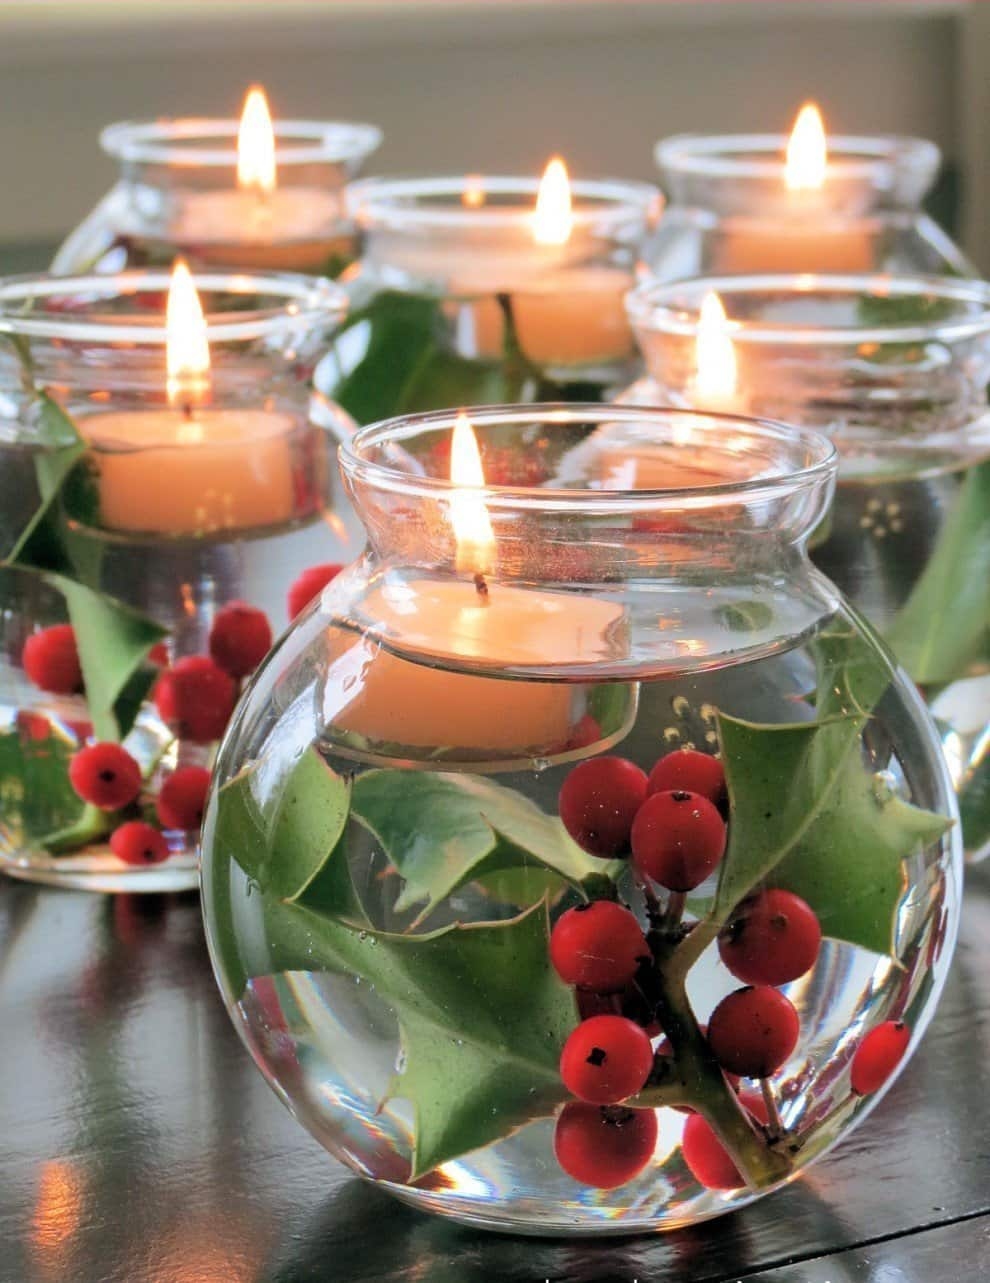 With floating candles on the table, the New Year celebration will be remembered for a long time